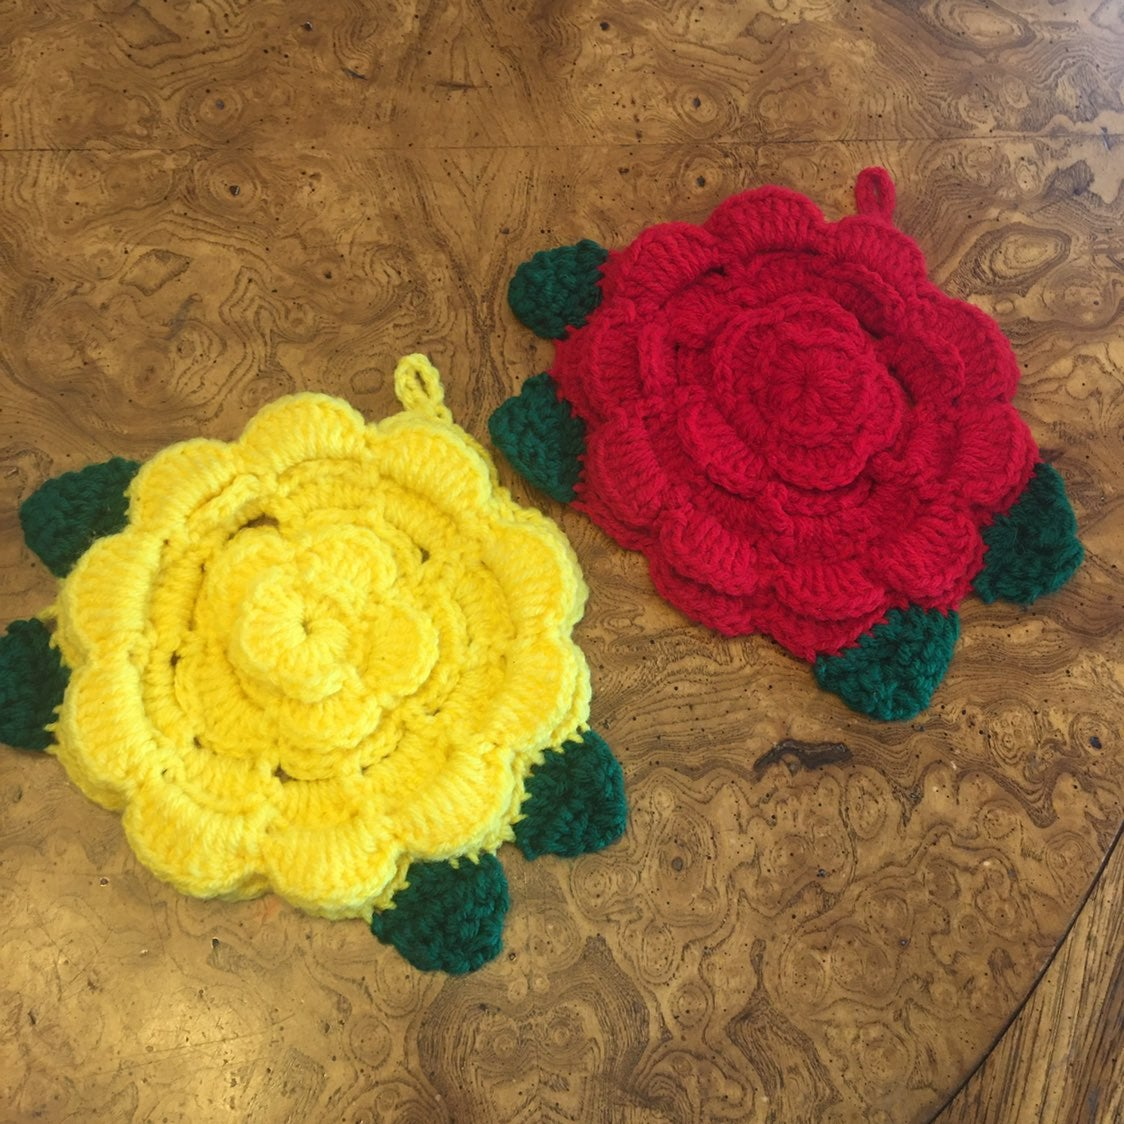 2 Crochet Pot Holders